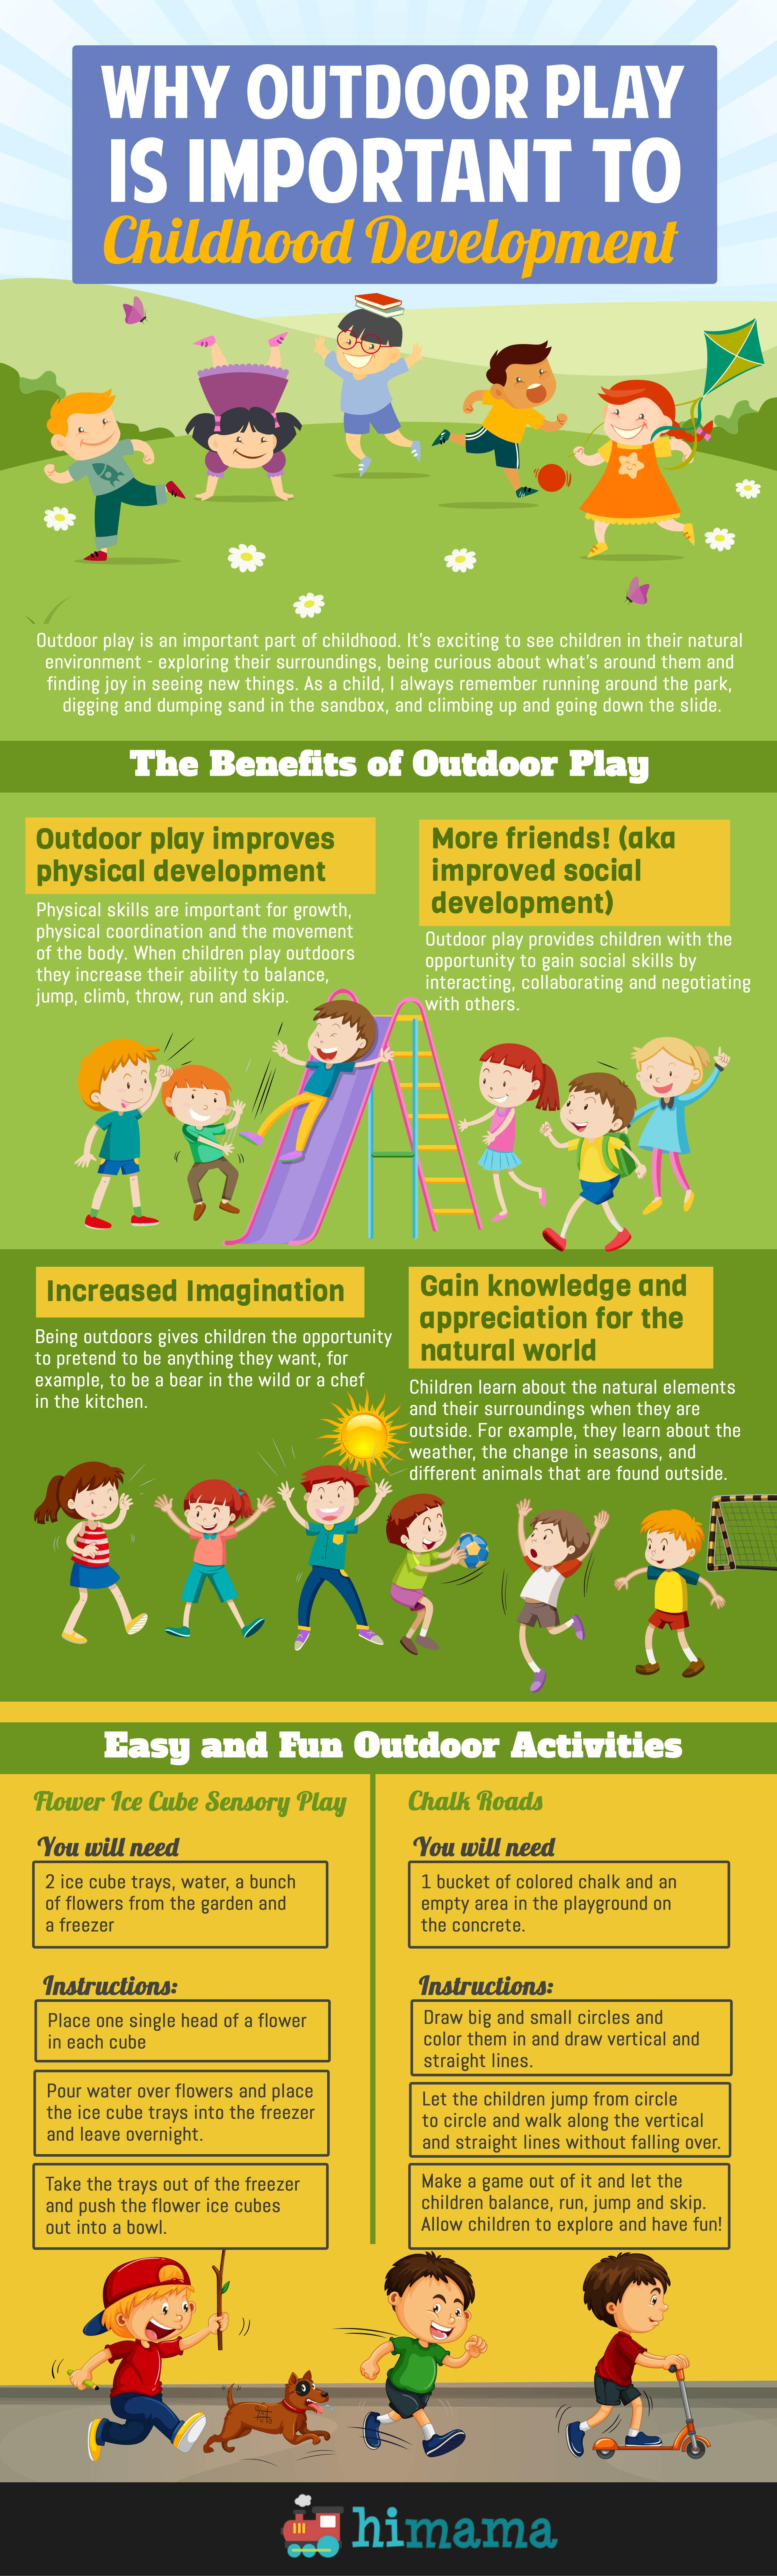 why outdoor play is important to childhood development